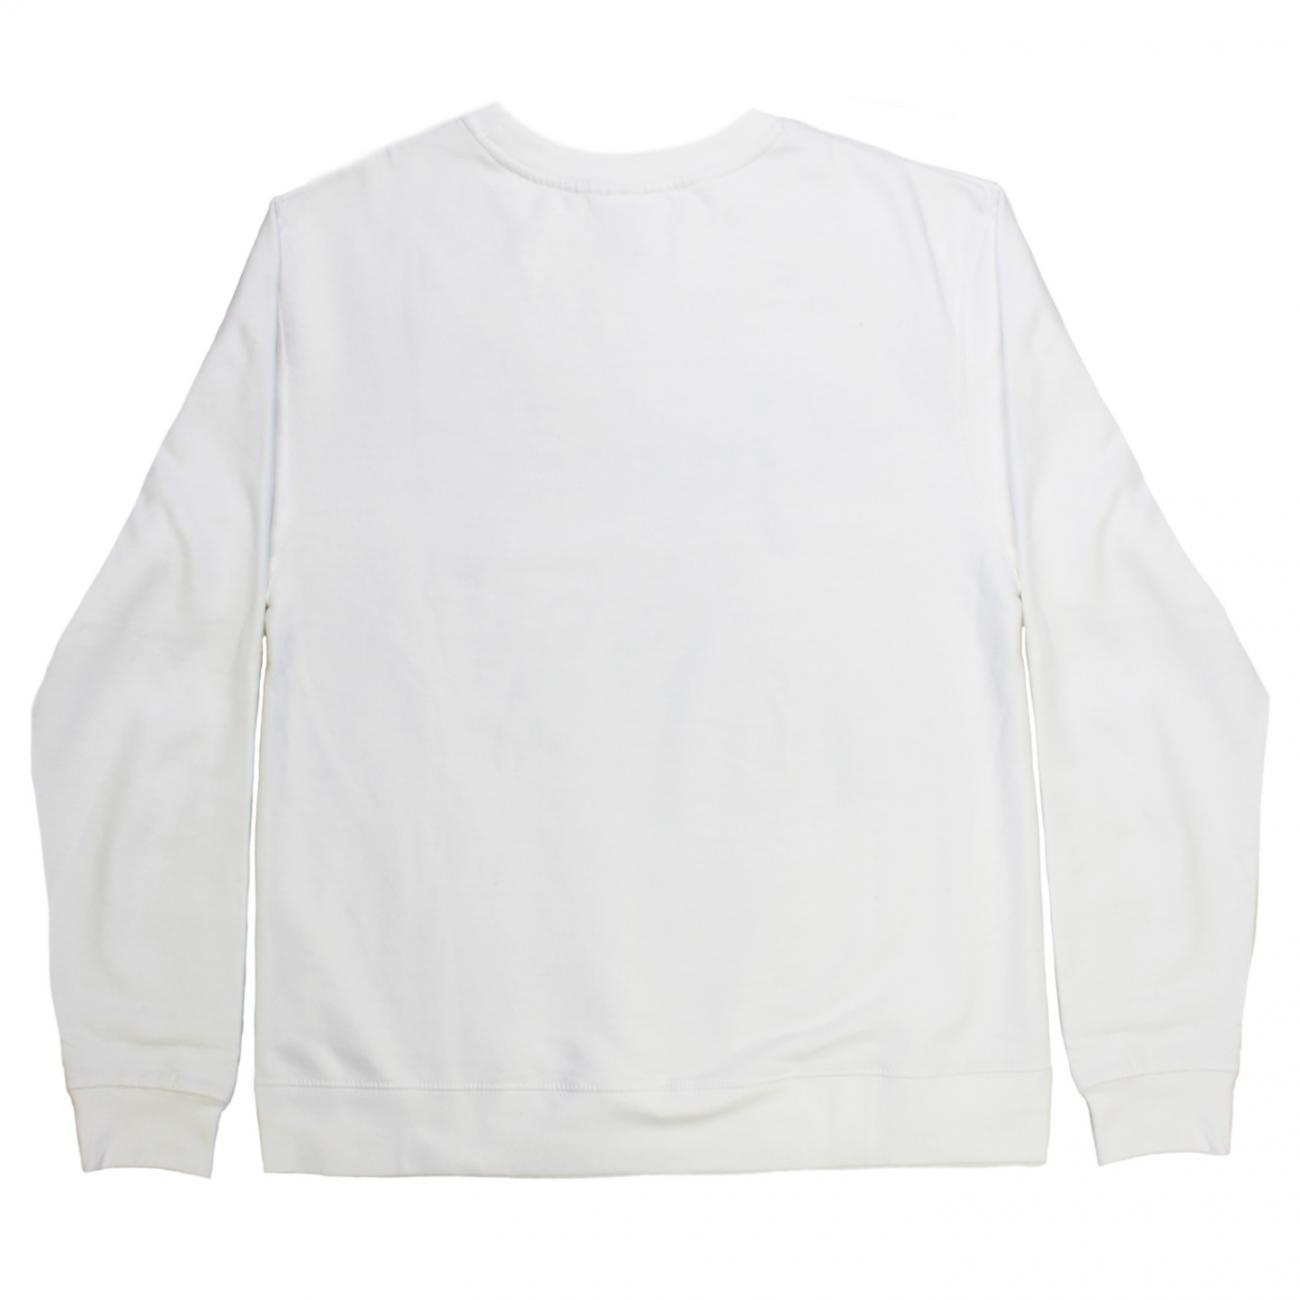 Gurney's Small Logo back white